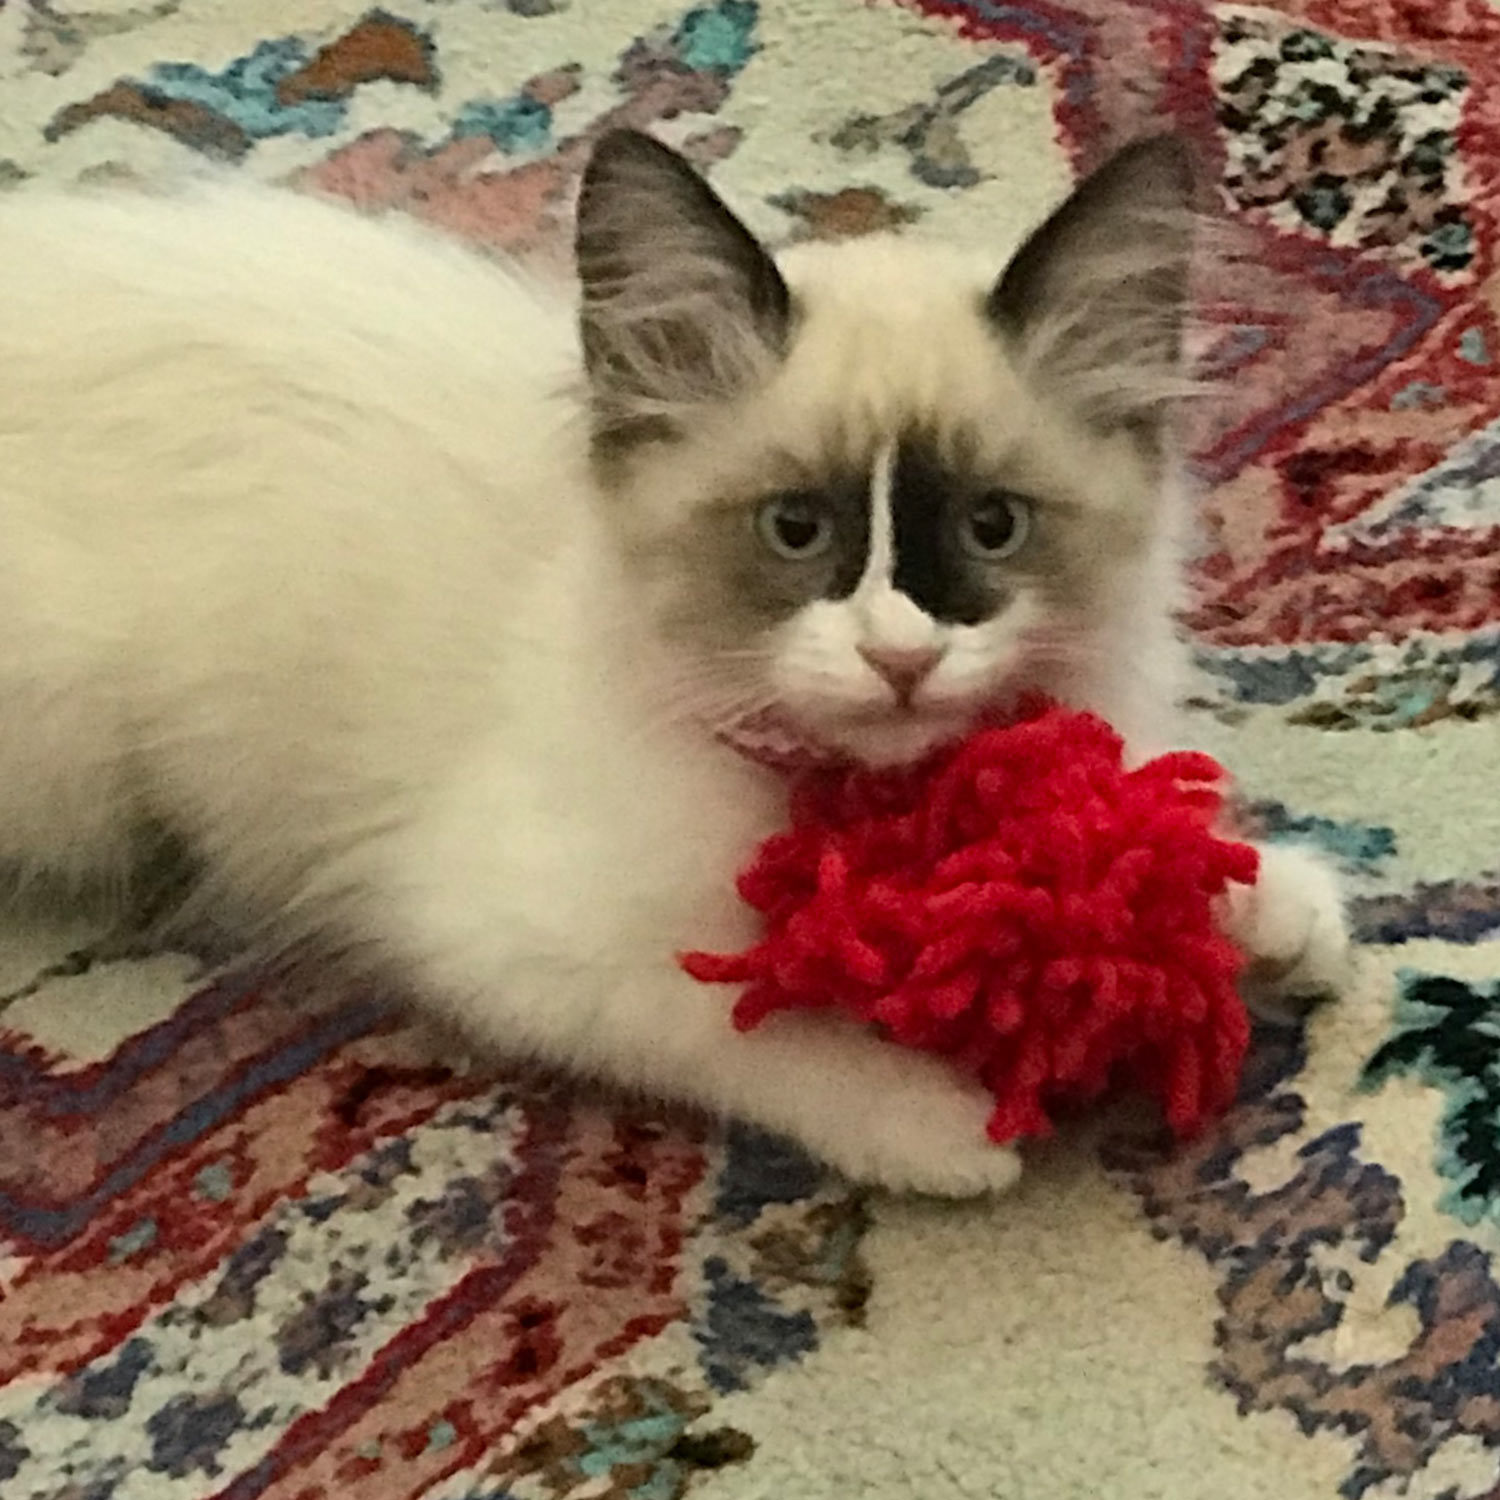 """Trina S. shared a picture of her kitten """"Smudgie"""", adopted from Animal Care Services in Long Beach, California. Smudgie loves her red yarn toy."""